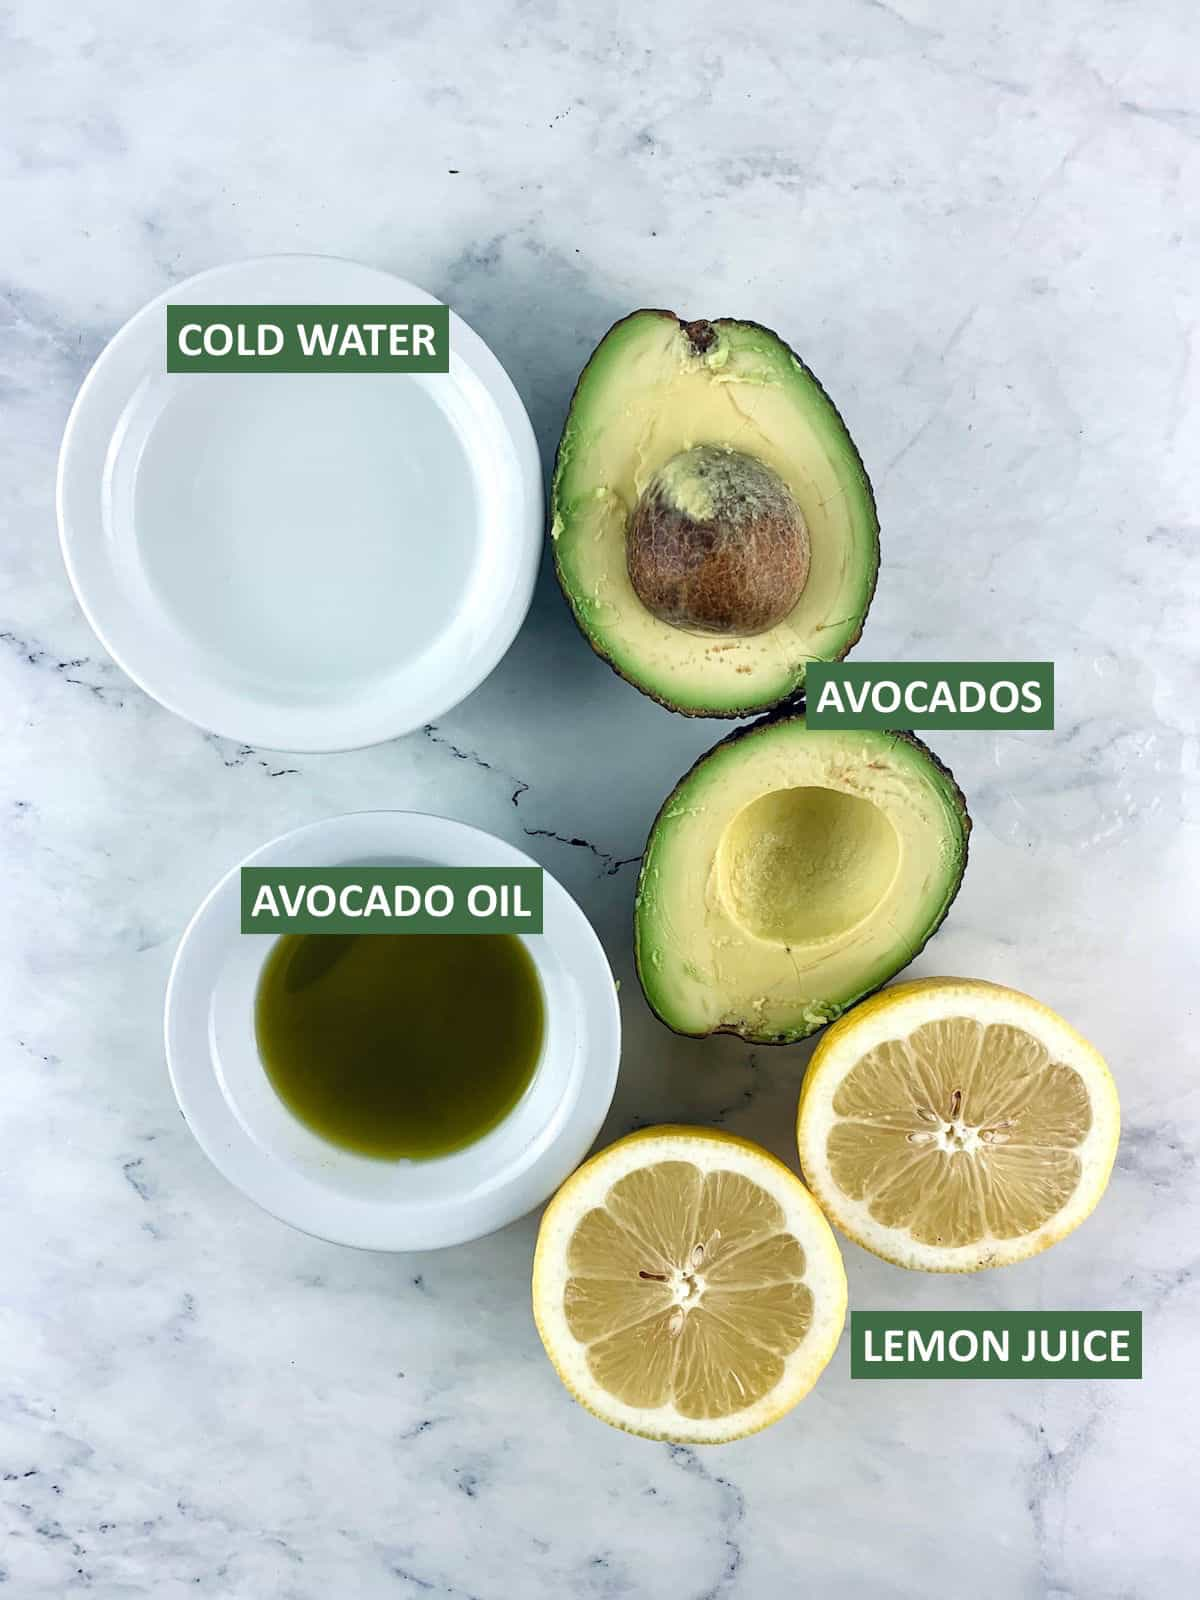 labelled ingredients needed to make avocado mayo